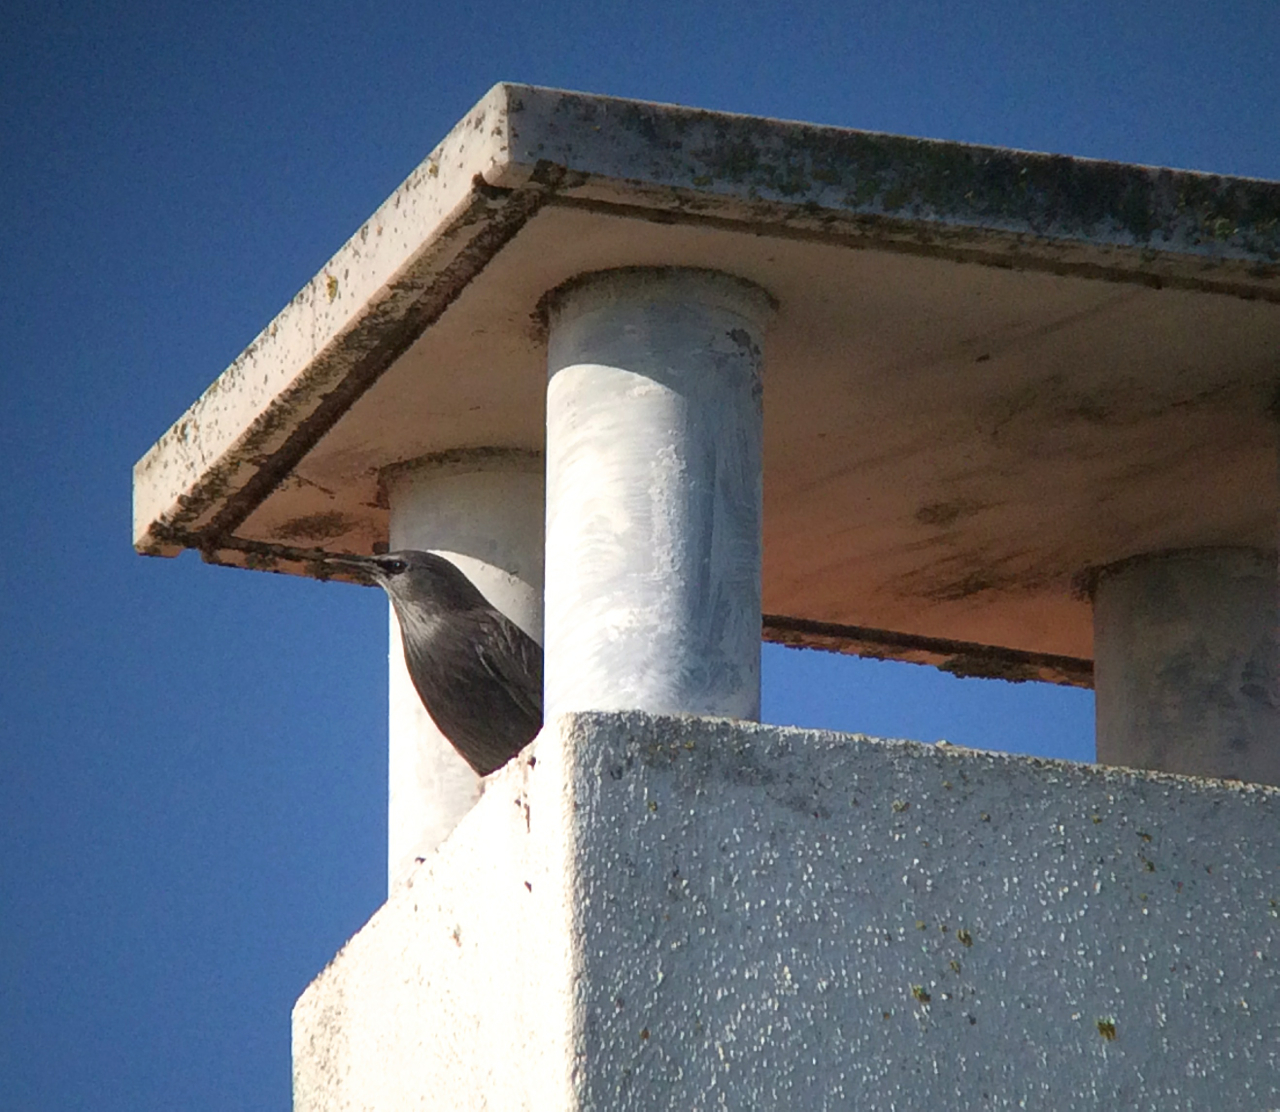 Check it out, it's a spotless starling--that's a thing, an actual species to see while in Portugal.